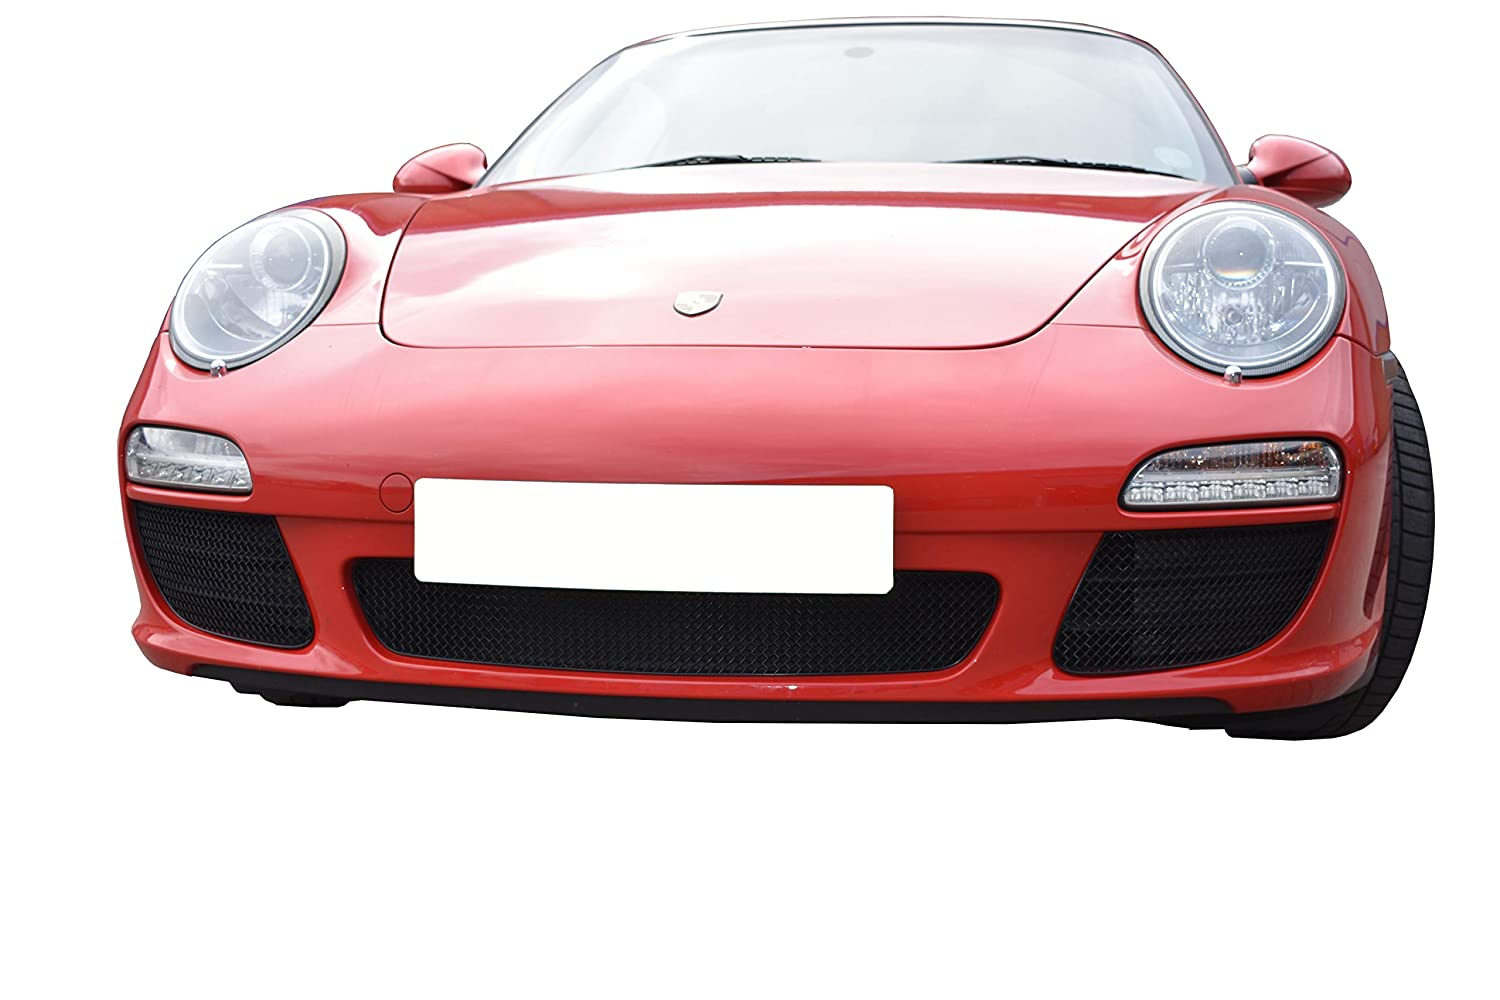 Black Finish Zunsport Compatible With Porsche Carrera 997.2 C2 2009-2012 Front Grille Set C2S